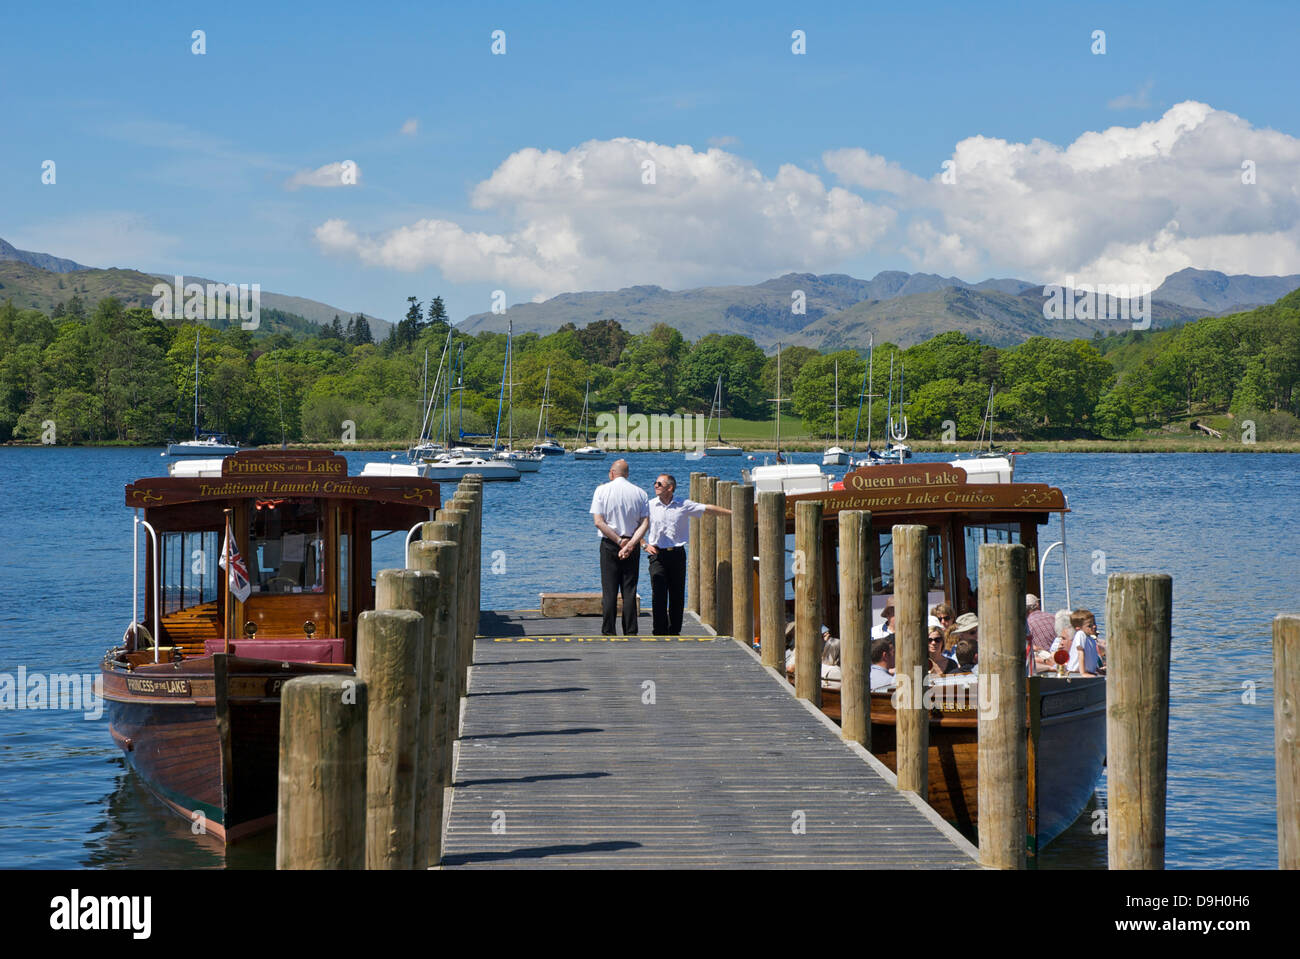 Employees of Windermere Lake Cruises and passenger boats - Stock Image